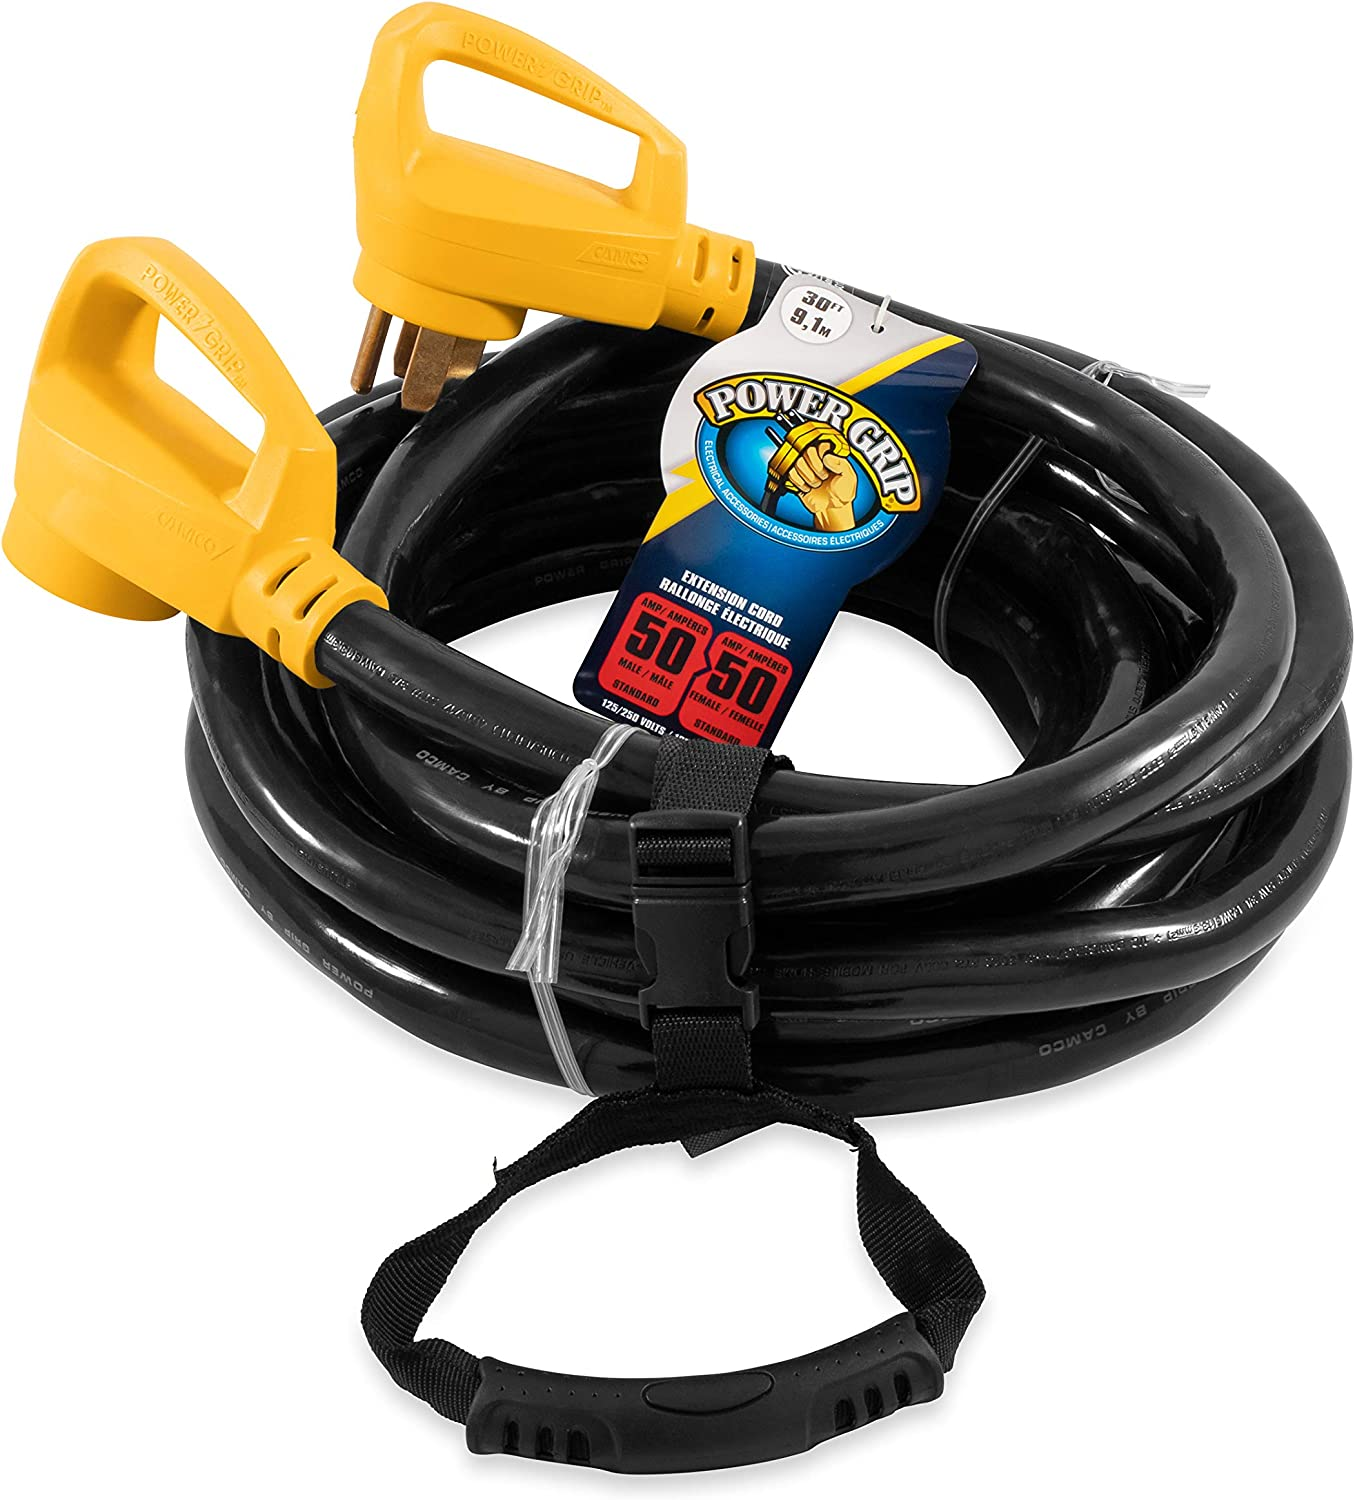 Camco 30' PowerGrip Heavy-Duty Outdoor 50-Amp Extension Cord for RV and Auto | Allows for Additional Length to Reach Distant Power Outlets | Built to Last (55195): Automotive